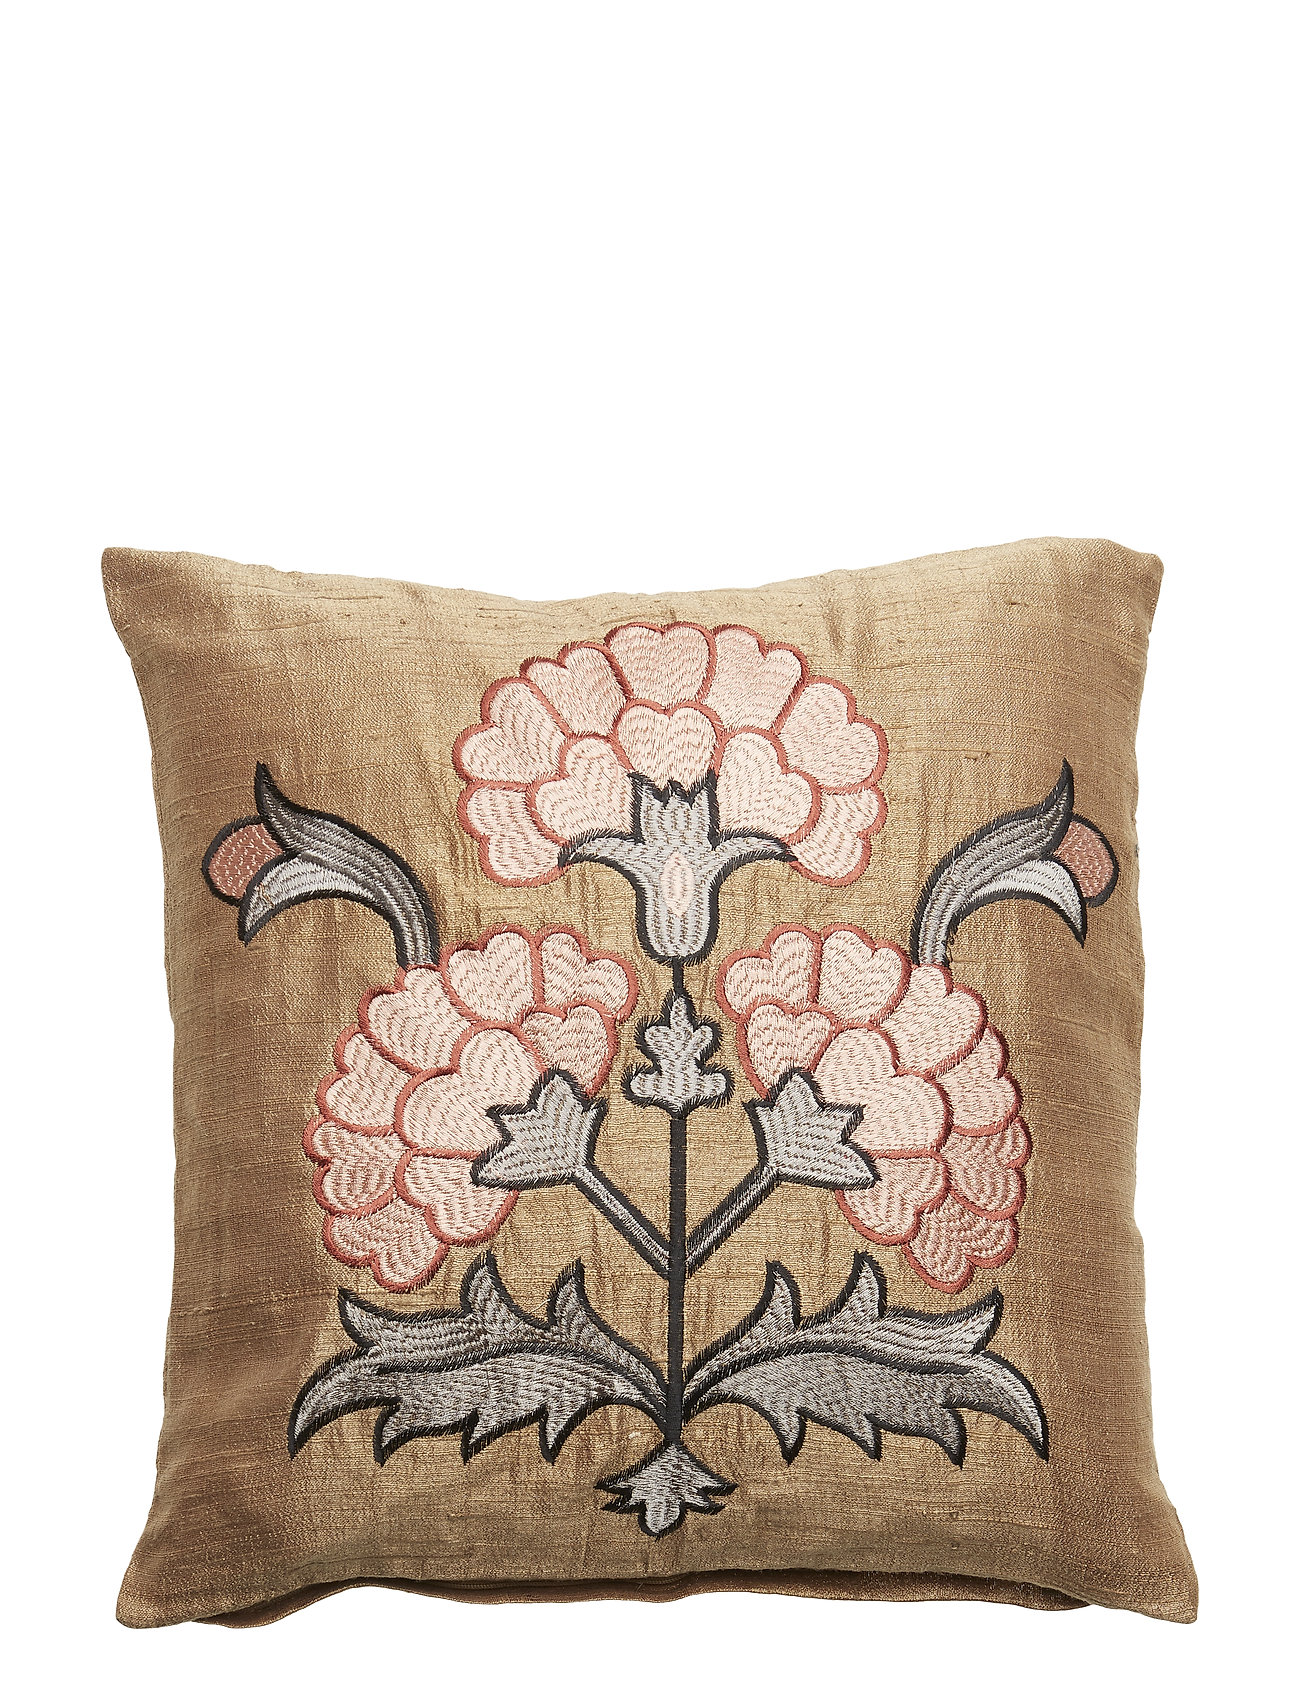 DAY Home Day Love Flower Cushion Cover - KISS